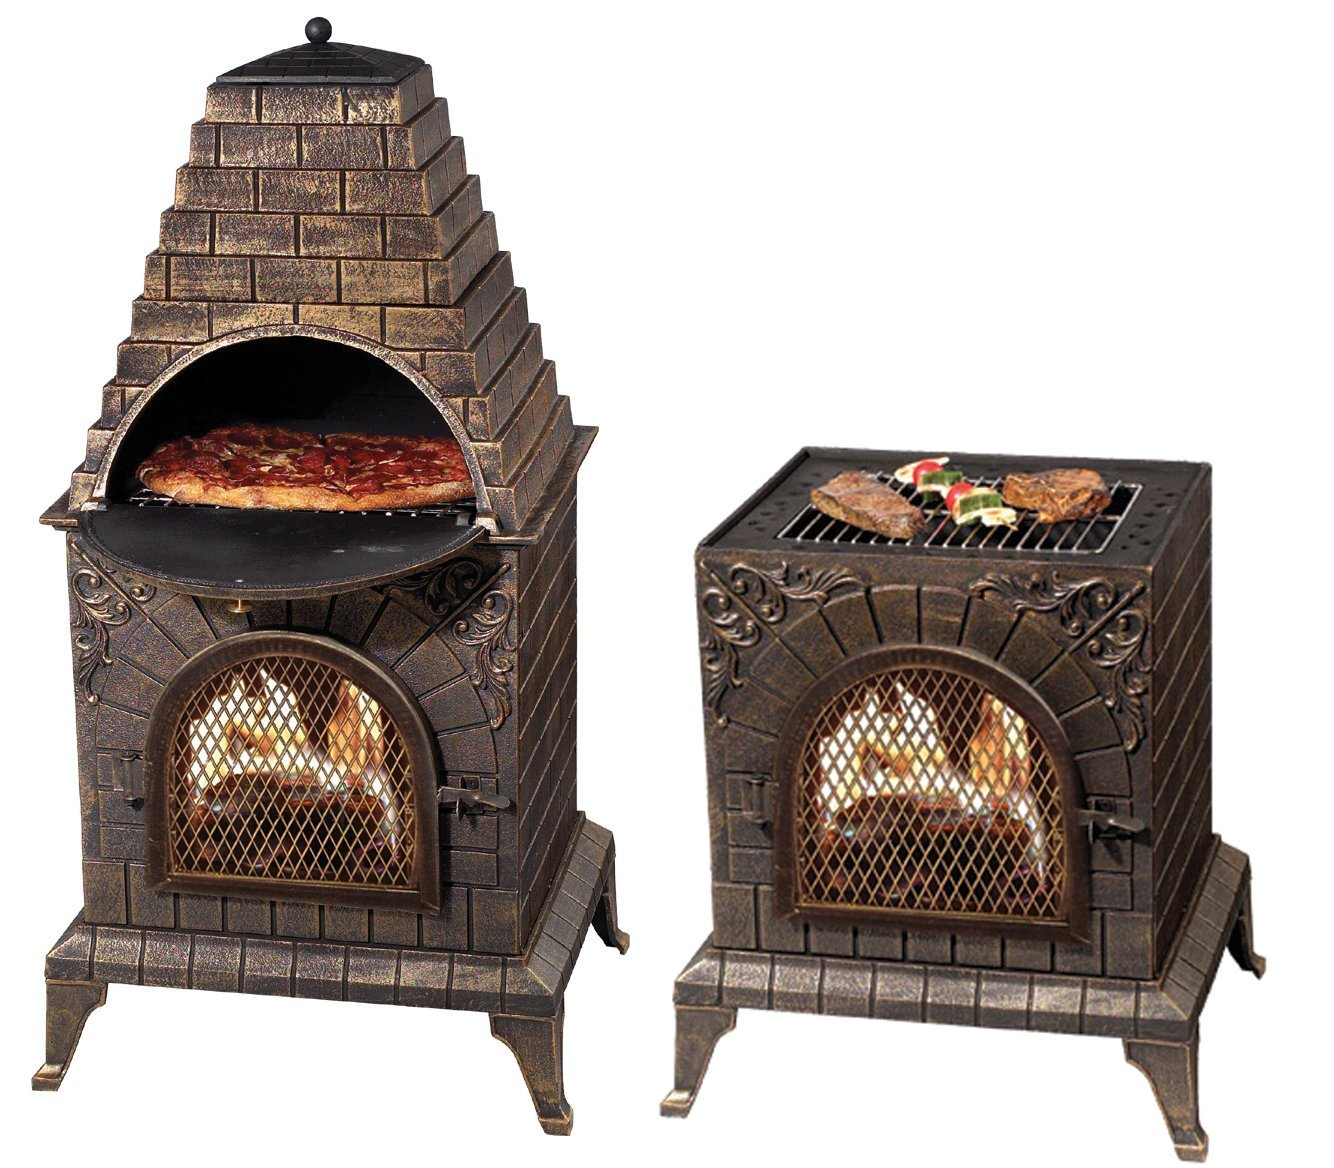 Wonderful Chiminea Outdoor Fireplace For Patio Furniture Ideas: Lovely Brown Chiminea In Stylish Design For Outdoor Fireplace Ideas